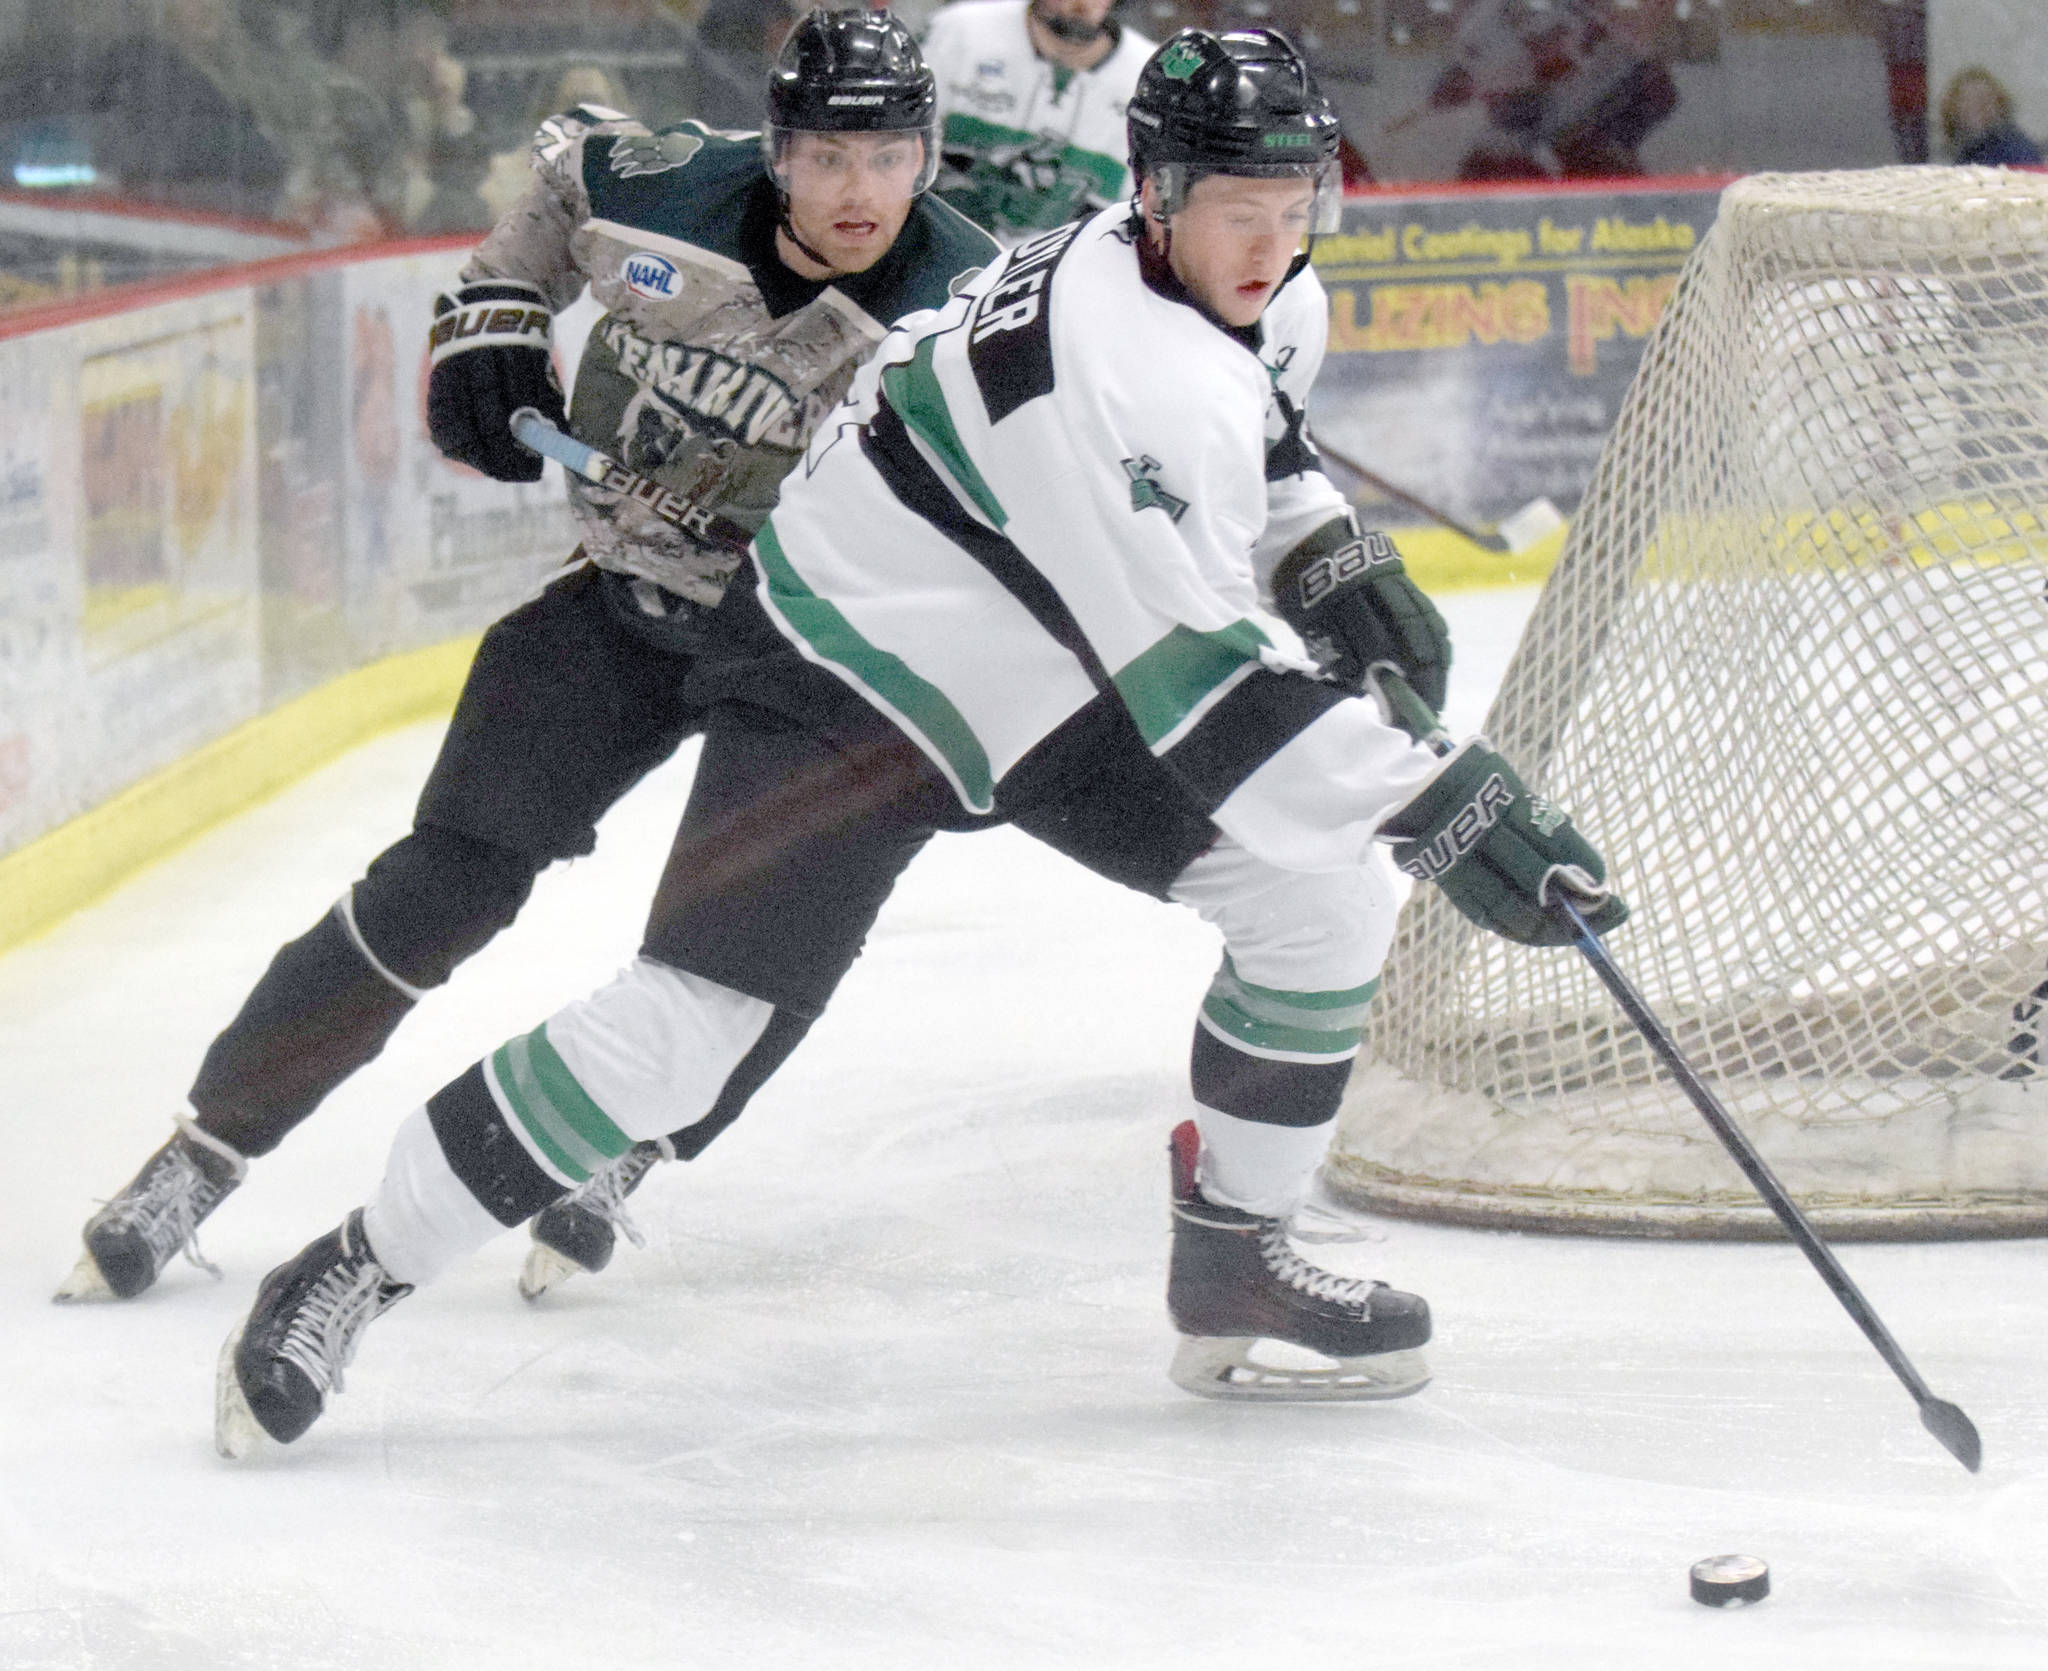 Chippewa (Wisconsin) Steel defenseman Spencer Oyler protects the puck from Brown Bears forward Brendan White on Friday, Jan. 11, 2019, at the Soldotna Regional Sports Complex. (Photo by Jeff Helminiak/Peninsula Clarion)